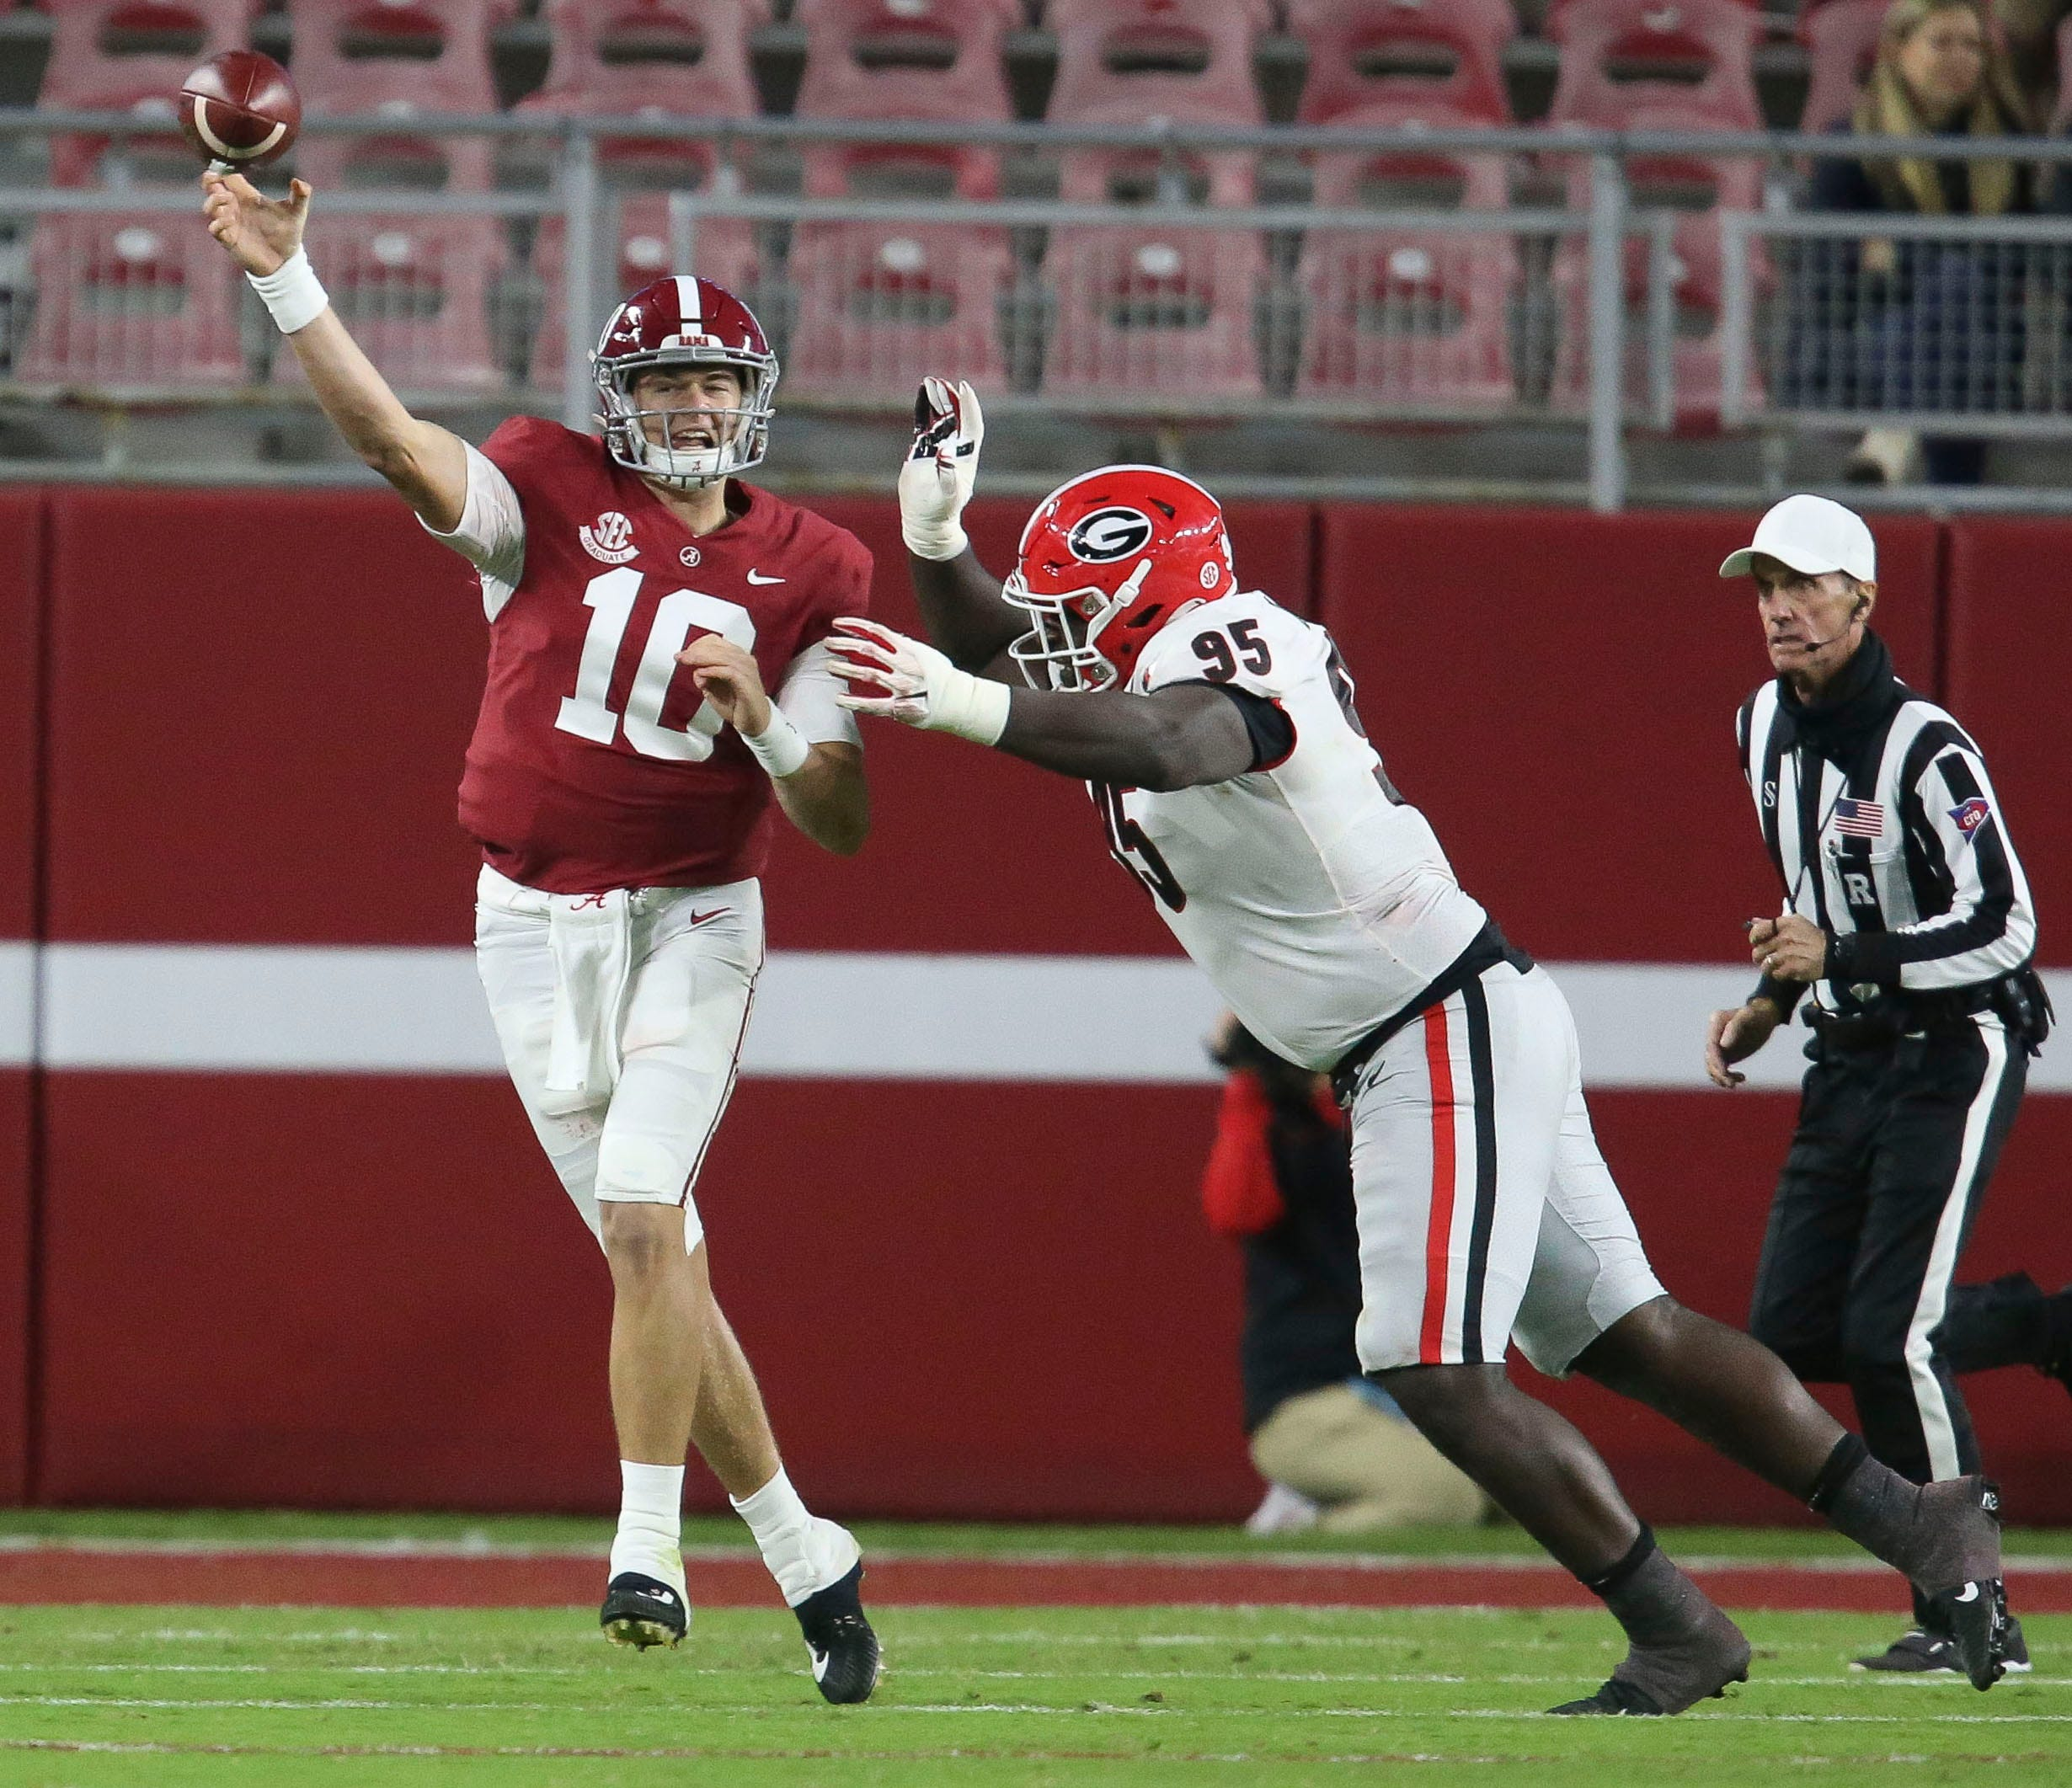 Alabama is new No. 1 in Amway Coaches Poll; Notre Dame now No. 2 after upset of Clemson